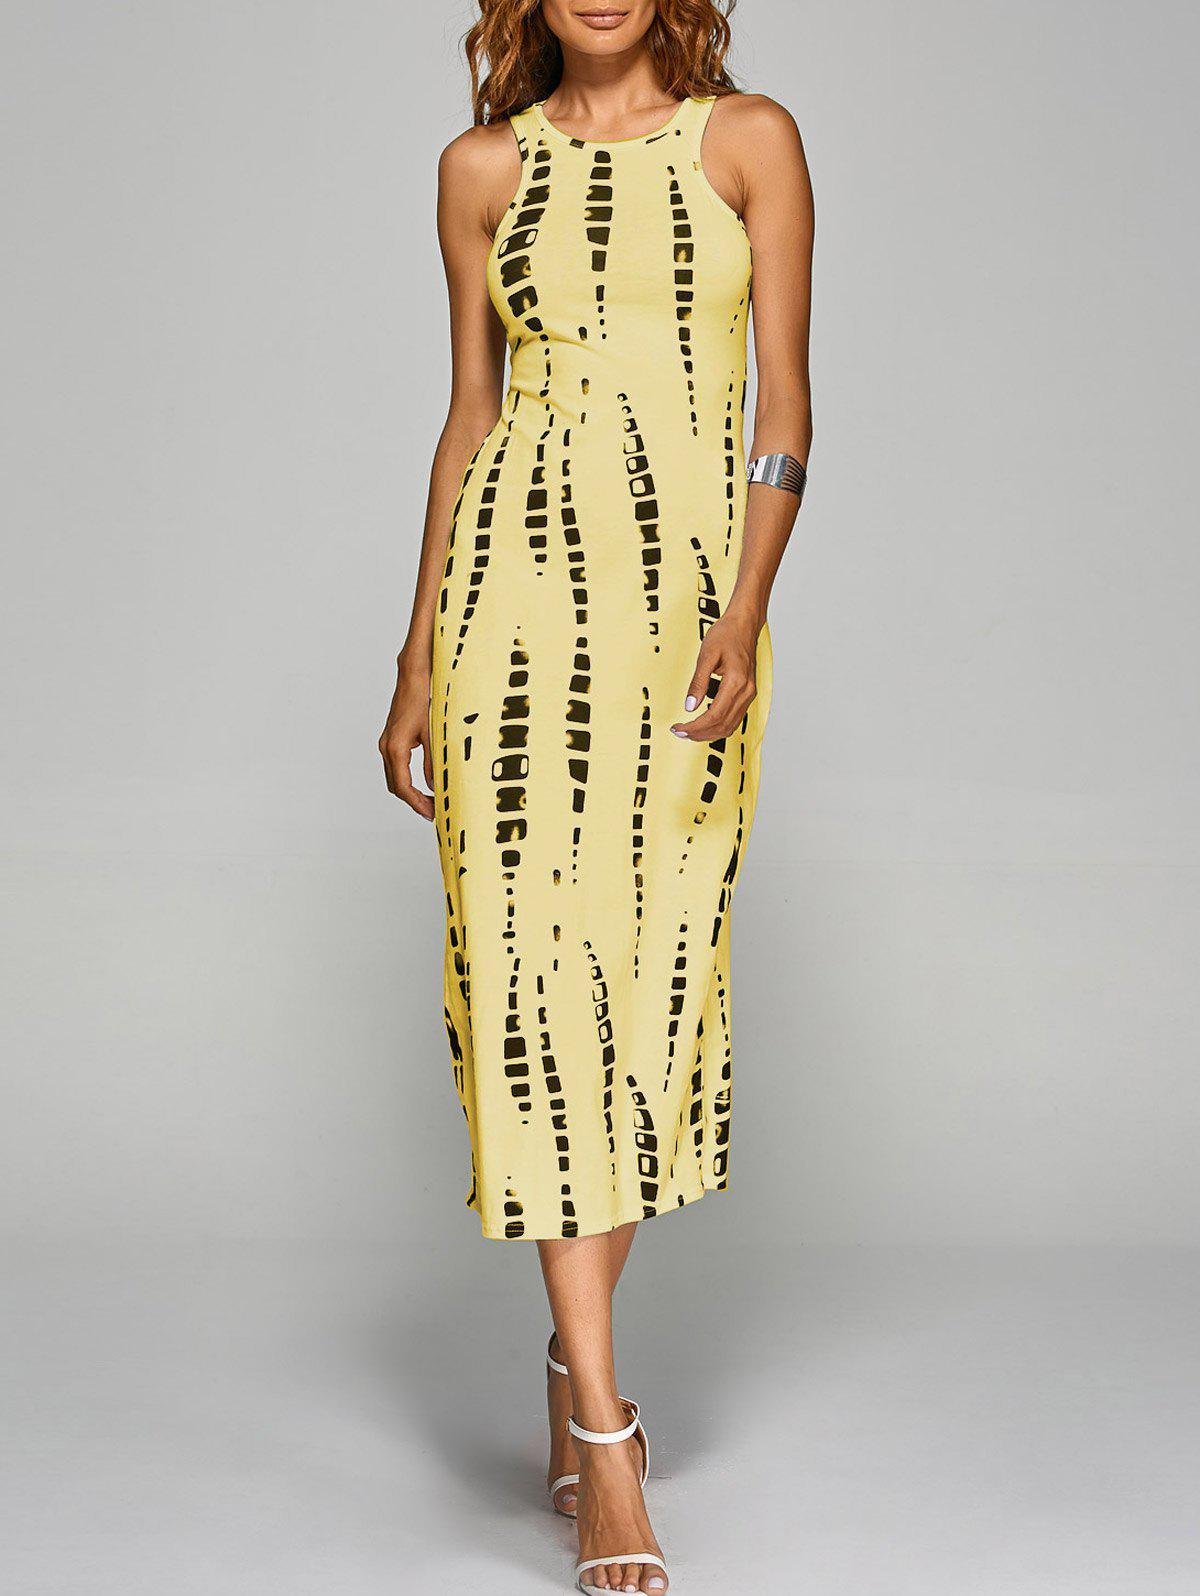 Jewel Neck Tie-Dyed Back Cut Out Bodycon Midi Dress - YELLOW M